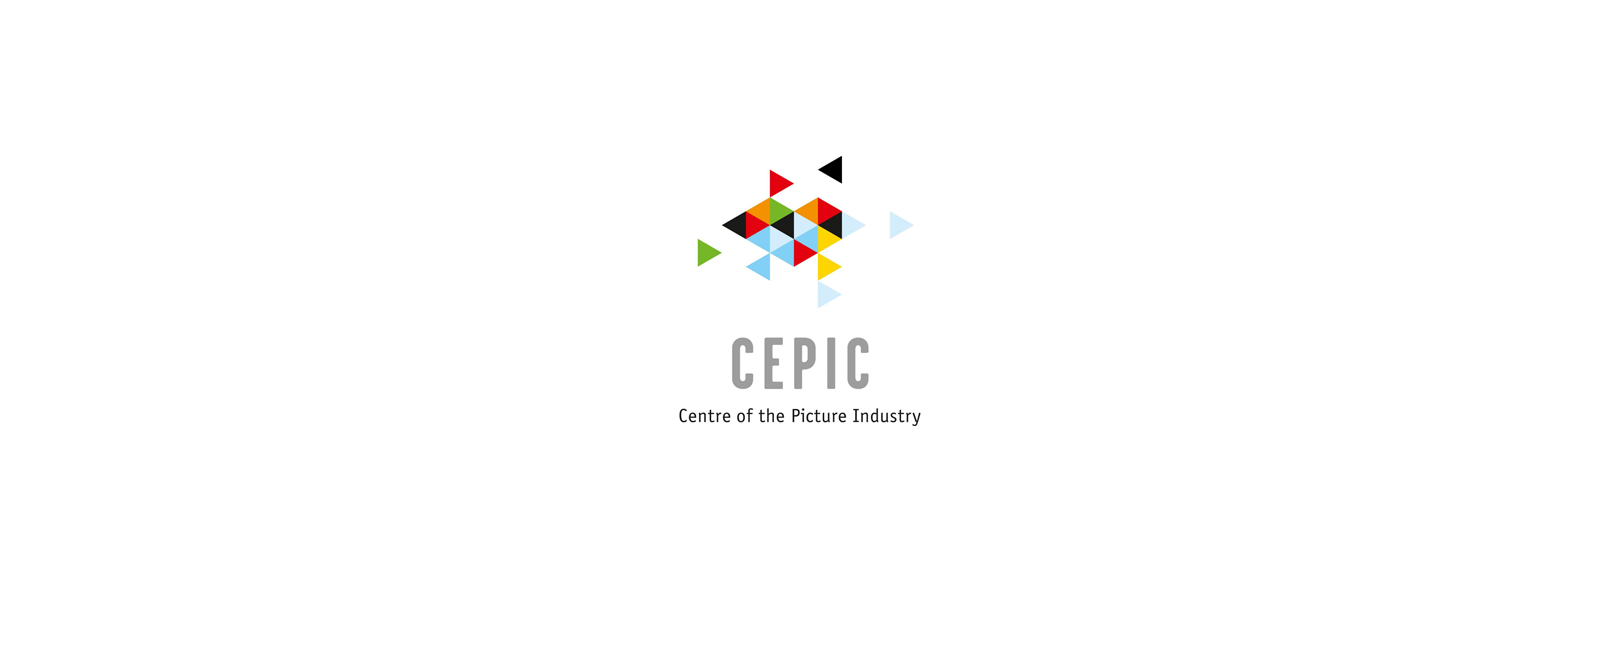 CEPIC – Center of the Picture Industry